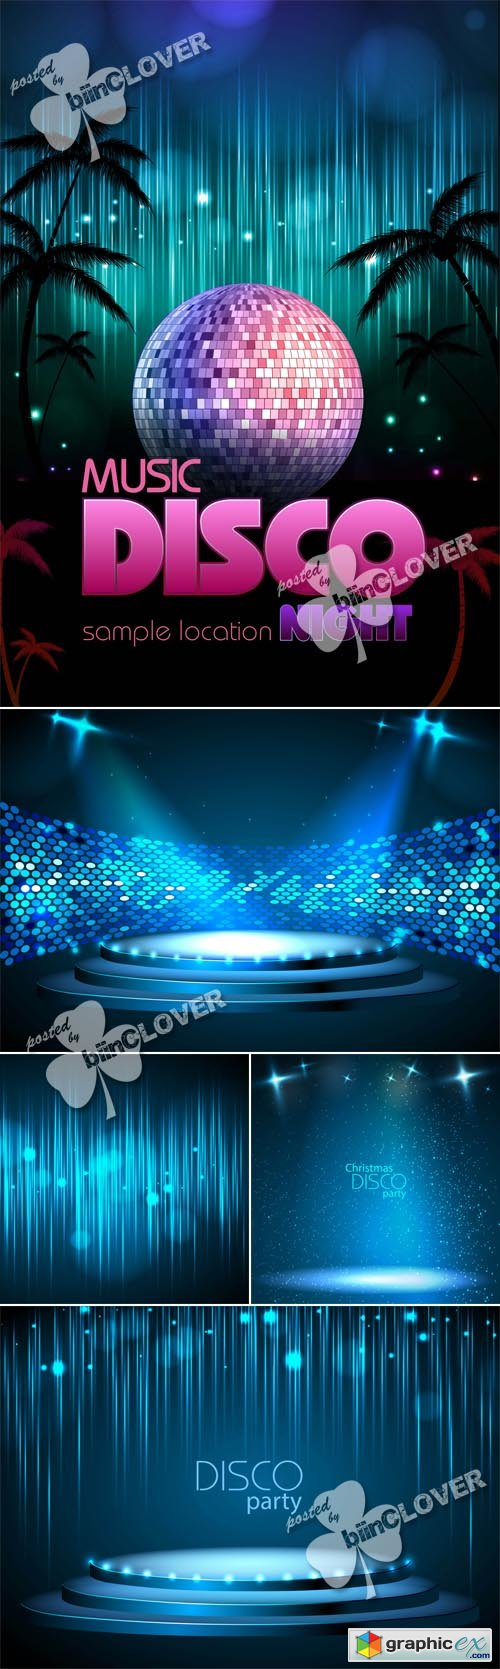 Vector Disco background 0529Disco background